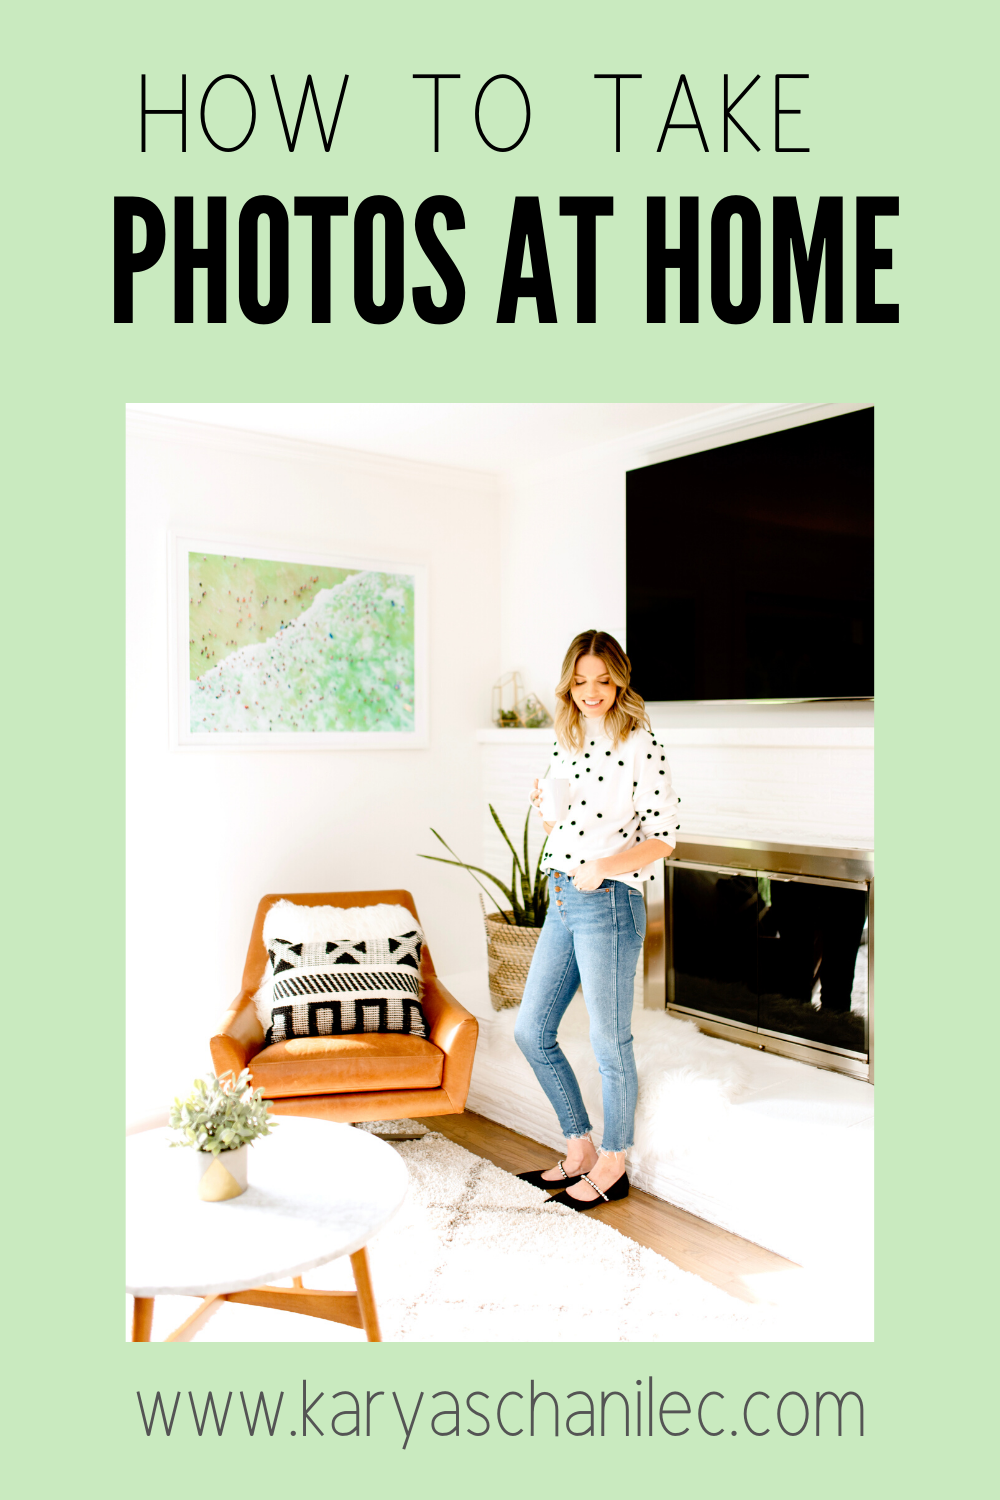 How to Take Better Photos Indoors: 4 Tips For At Home Photoshoots